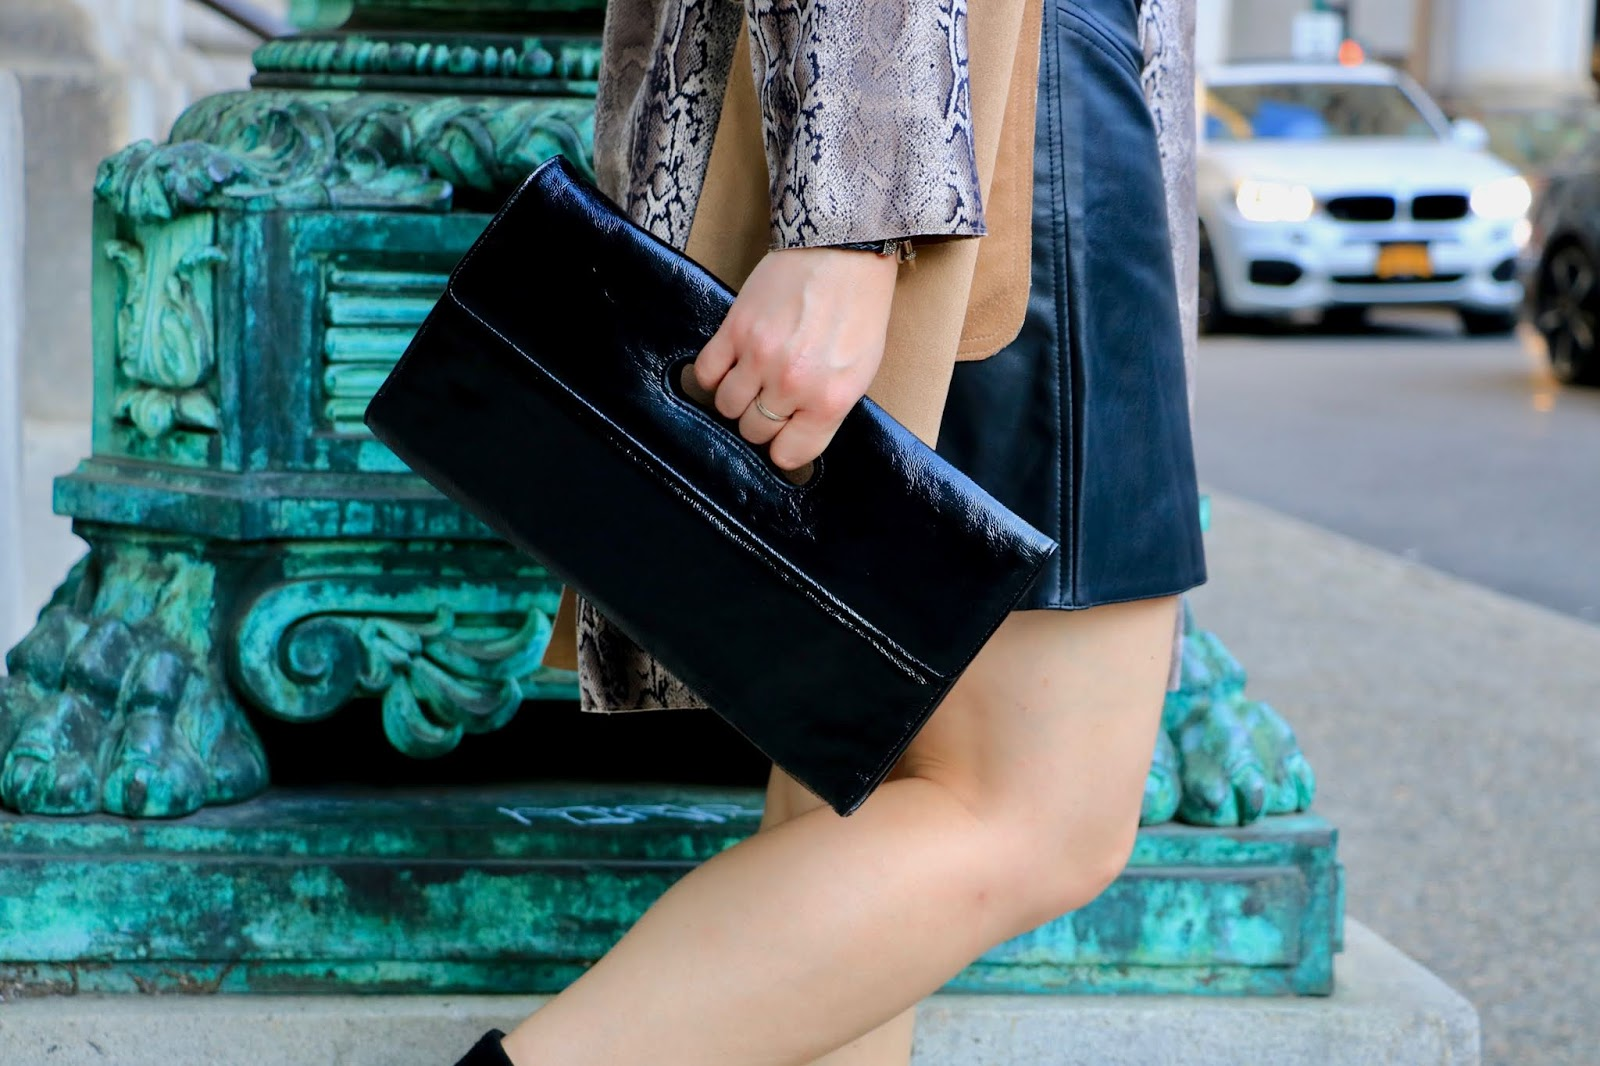 Nyc fashion blogger Kathleen Harper carrying a black patent leather clutch.